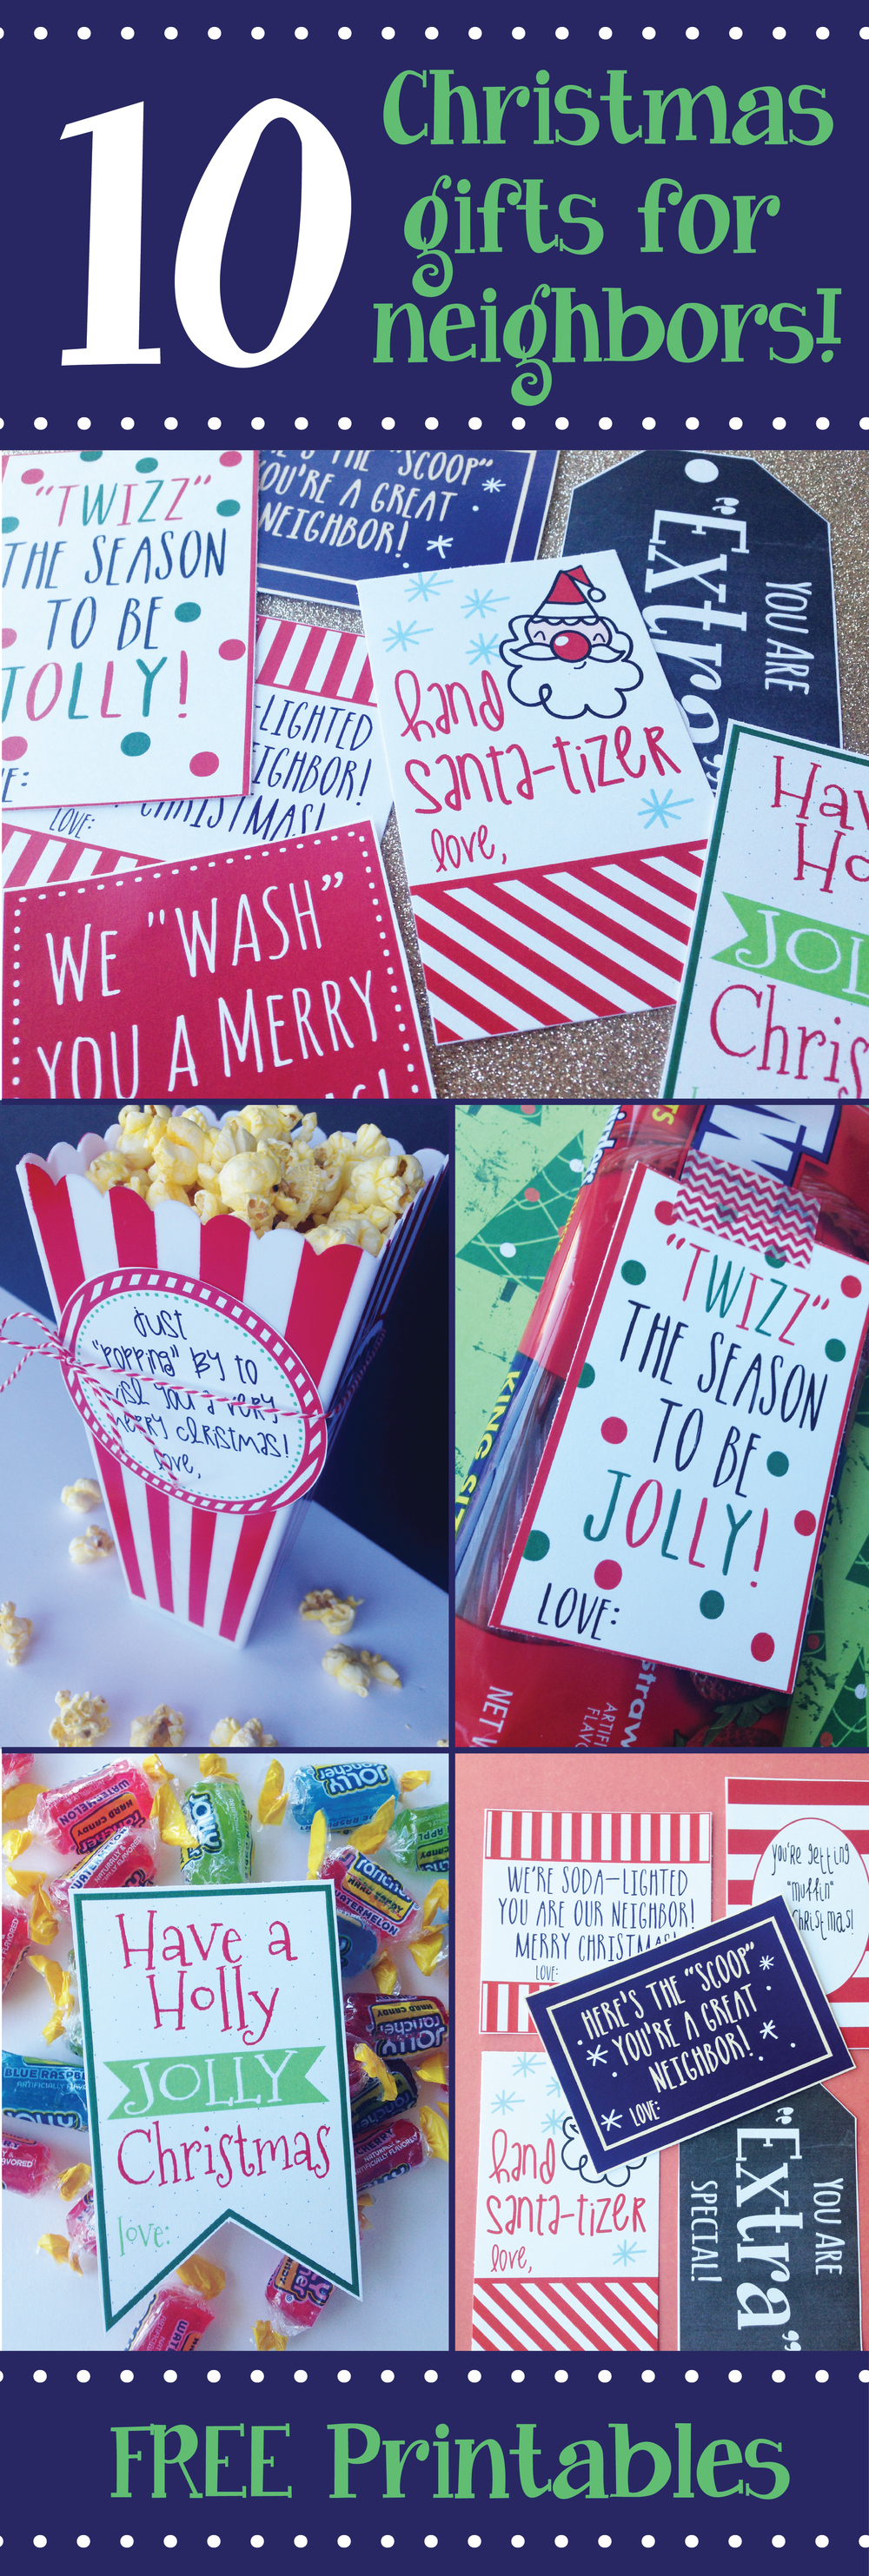 Adorable FREE Christmas Printables for neighbor gifts!!